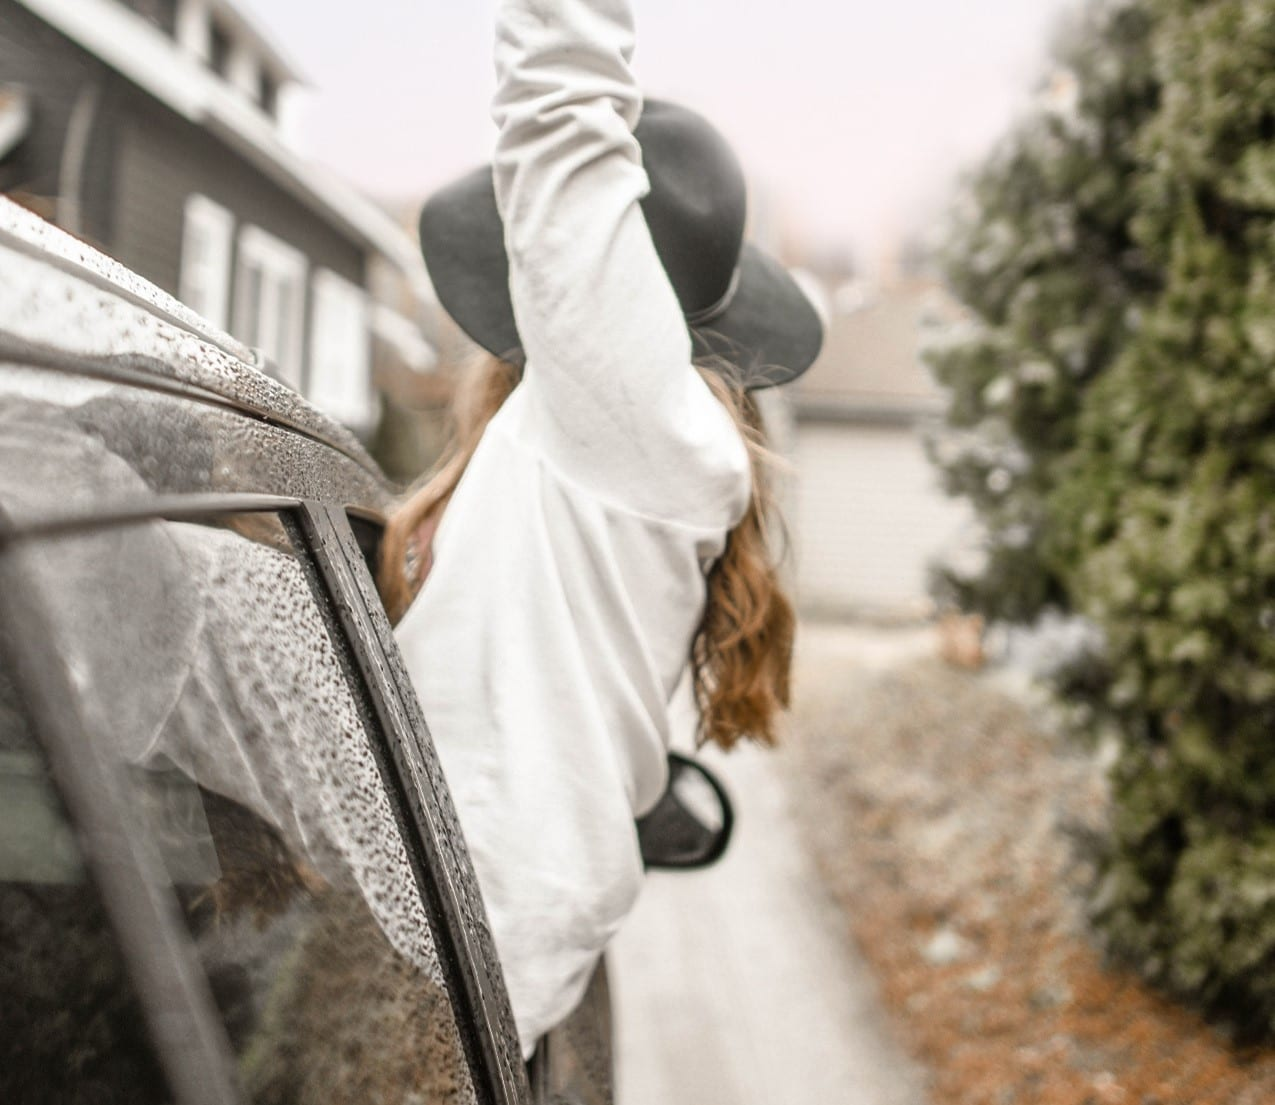 Travel tips to stay comfy on the road